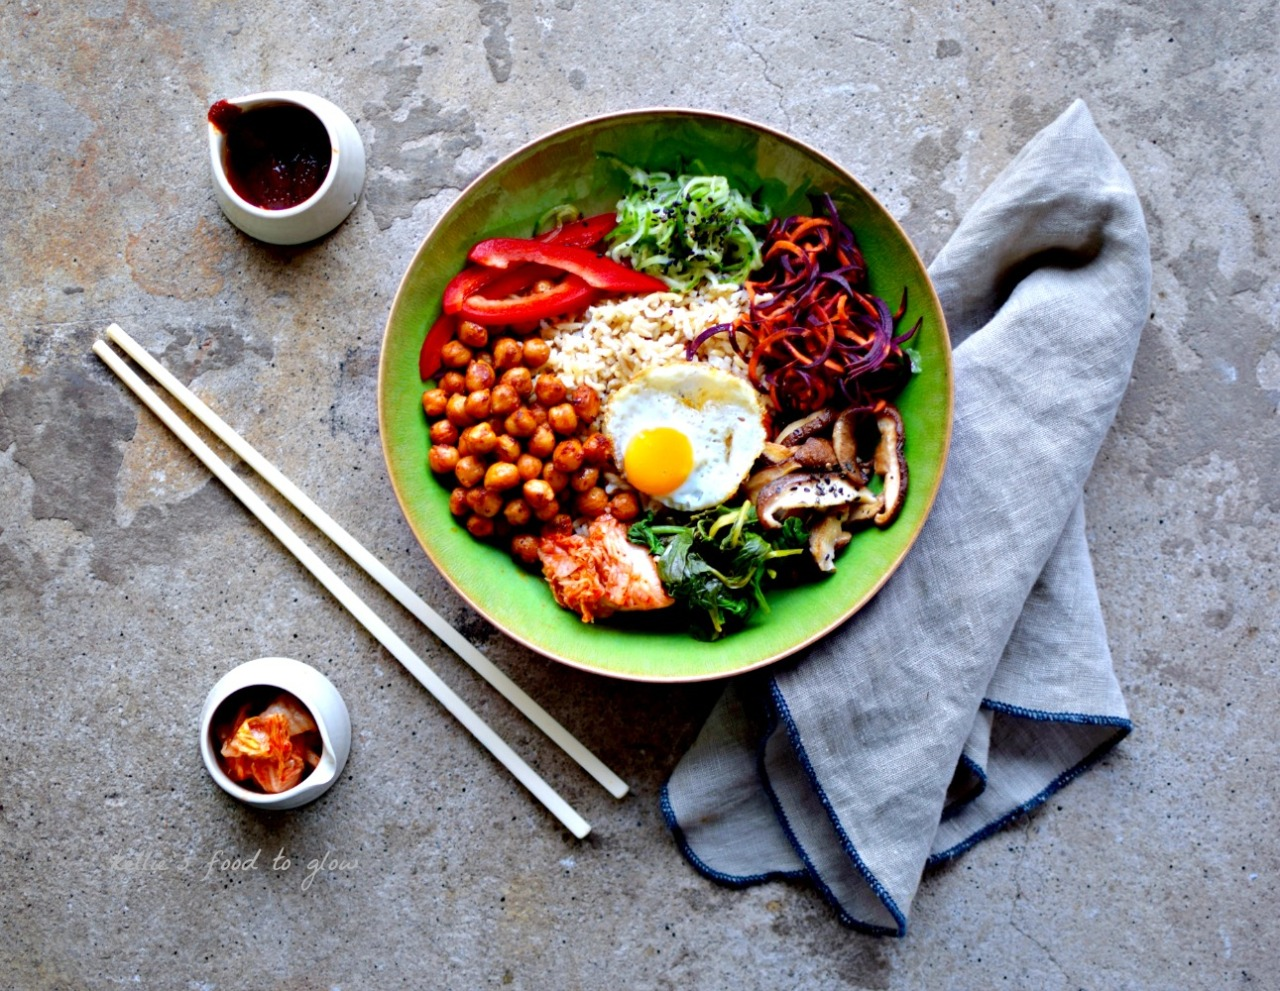 Korean Rice Cake Recipe Gochujang: Korean Rice Bowl With Gochujang Chickpeas Recipe (Bibimbap